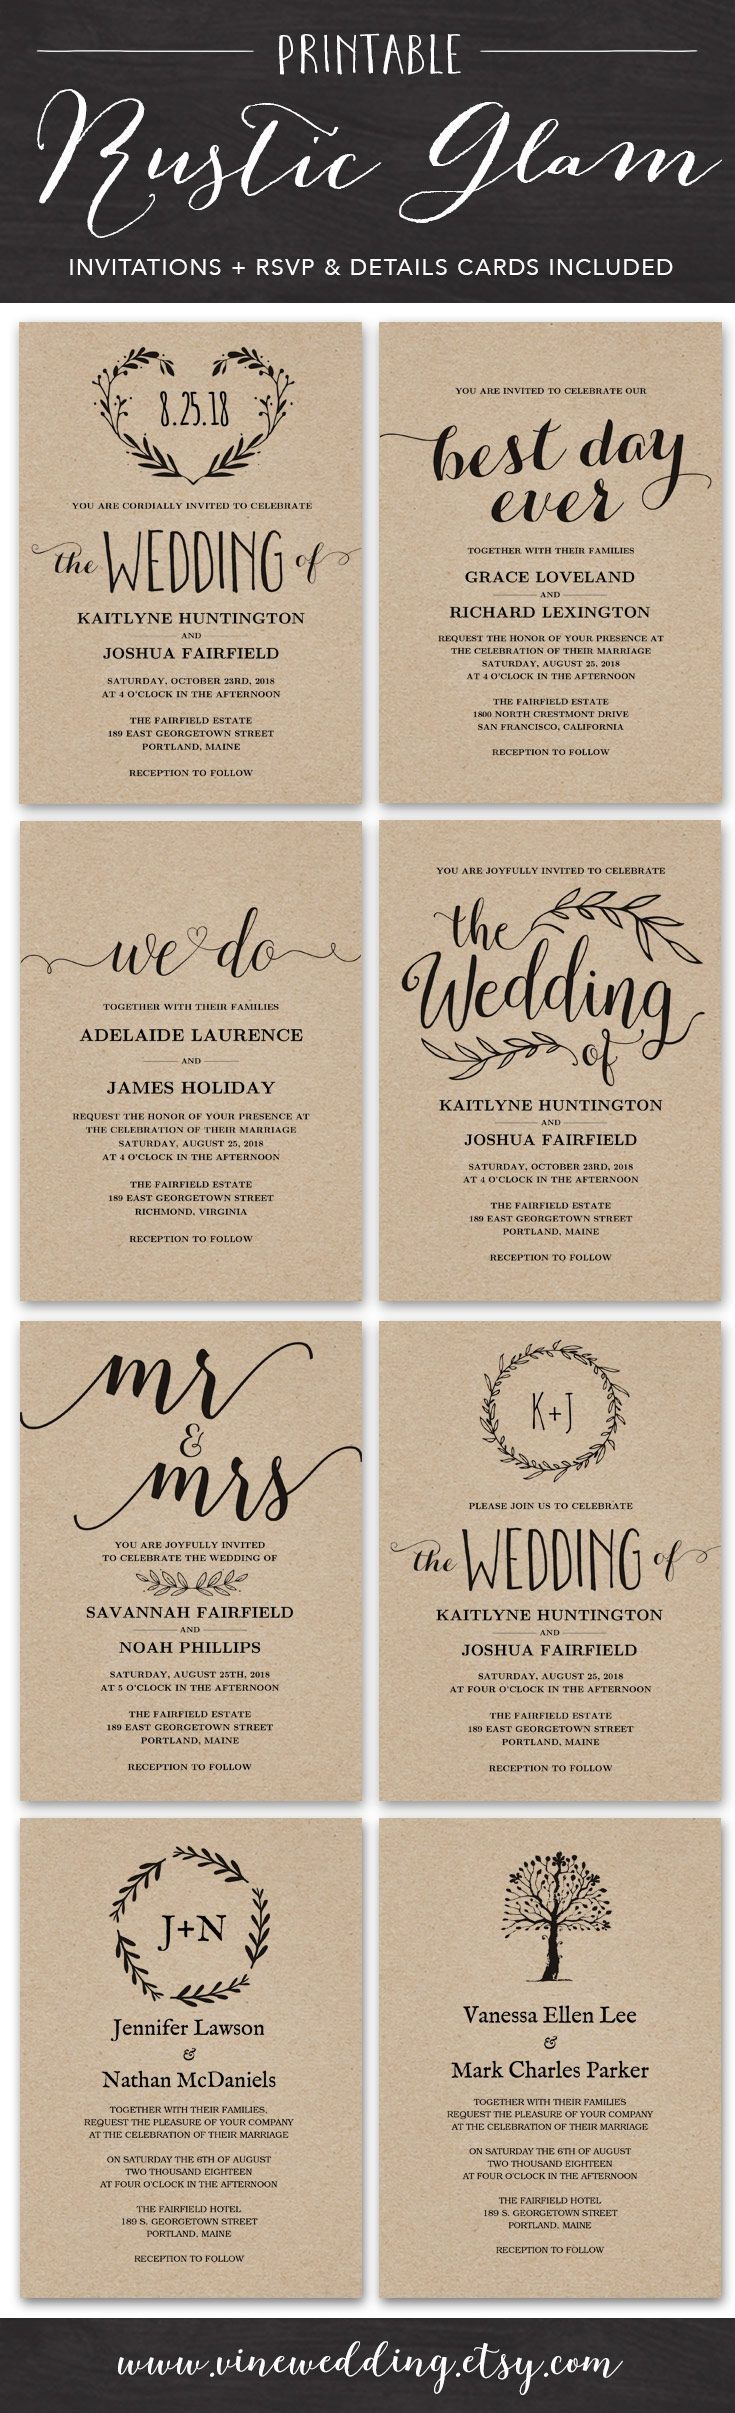 how much do invitations for wedding cost%0A Beautiful rustic wedding invitations  Editable instant download templates  you can print as many as you need   wedding  invitations  vinewedding    Pinterest